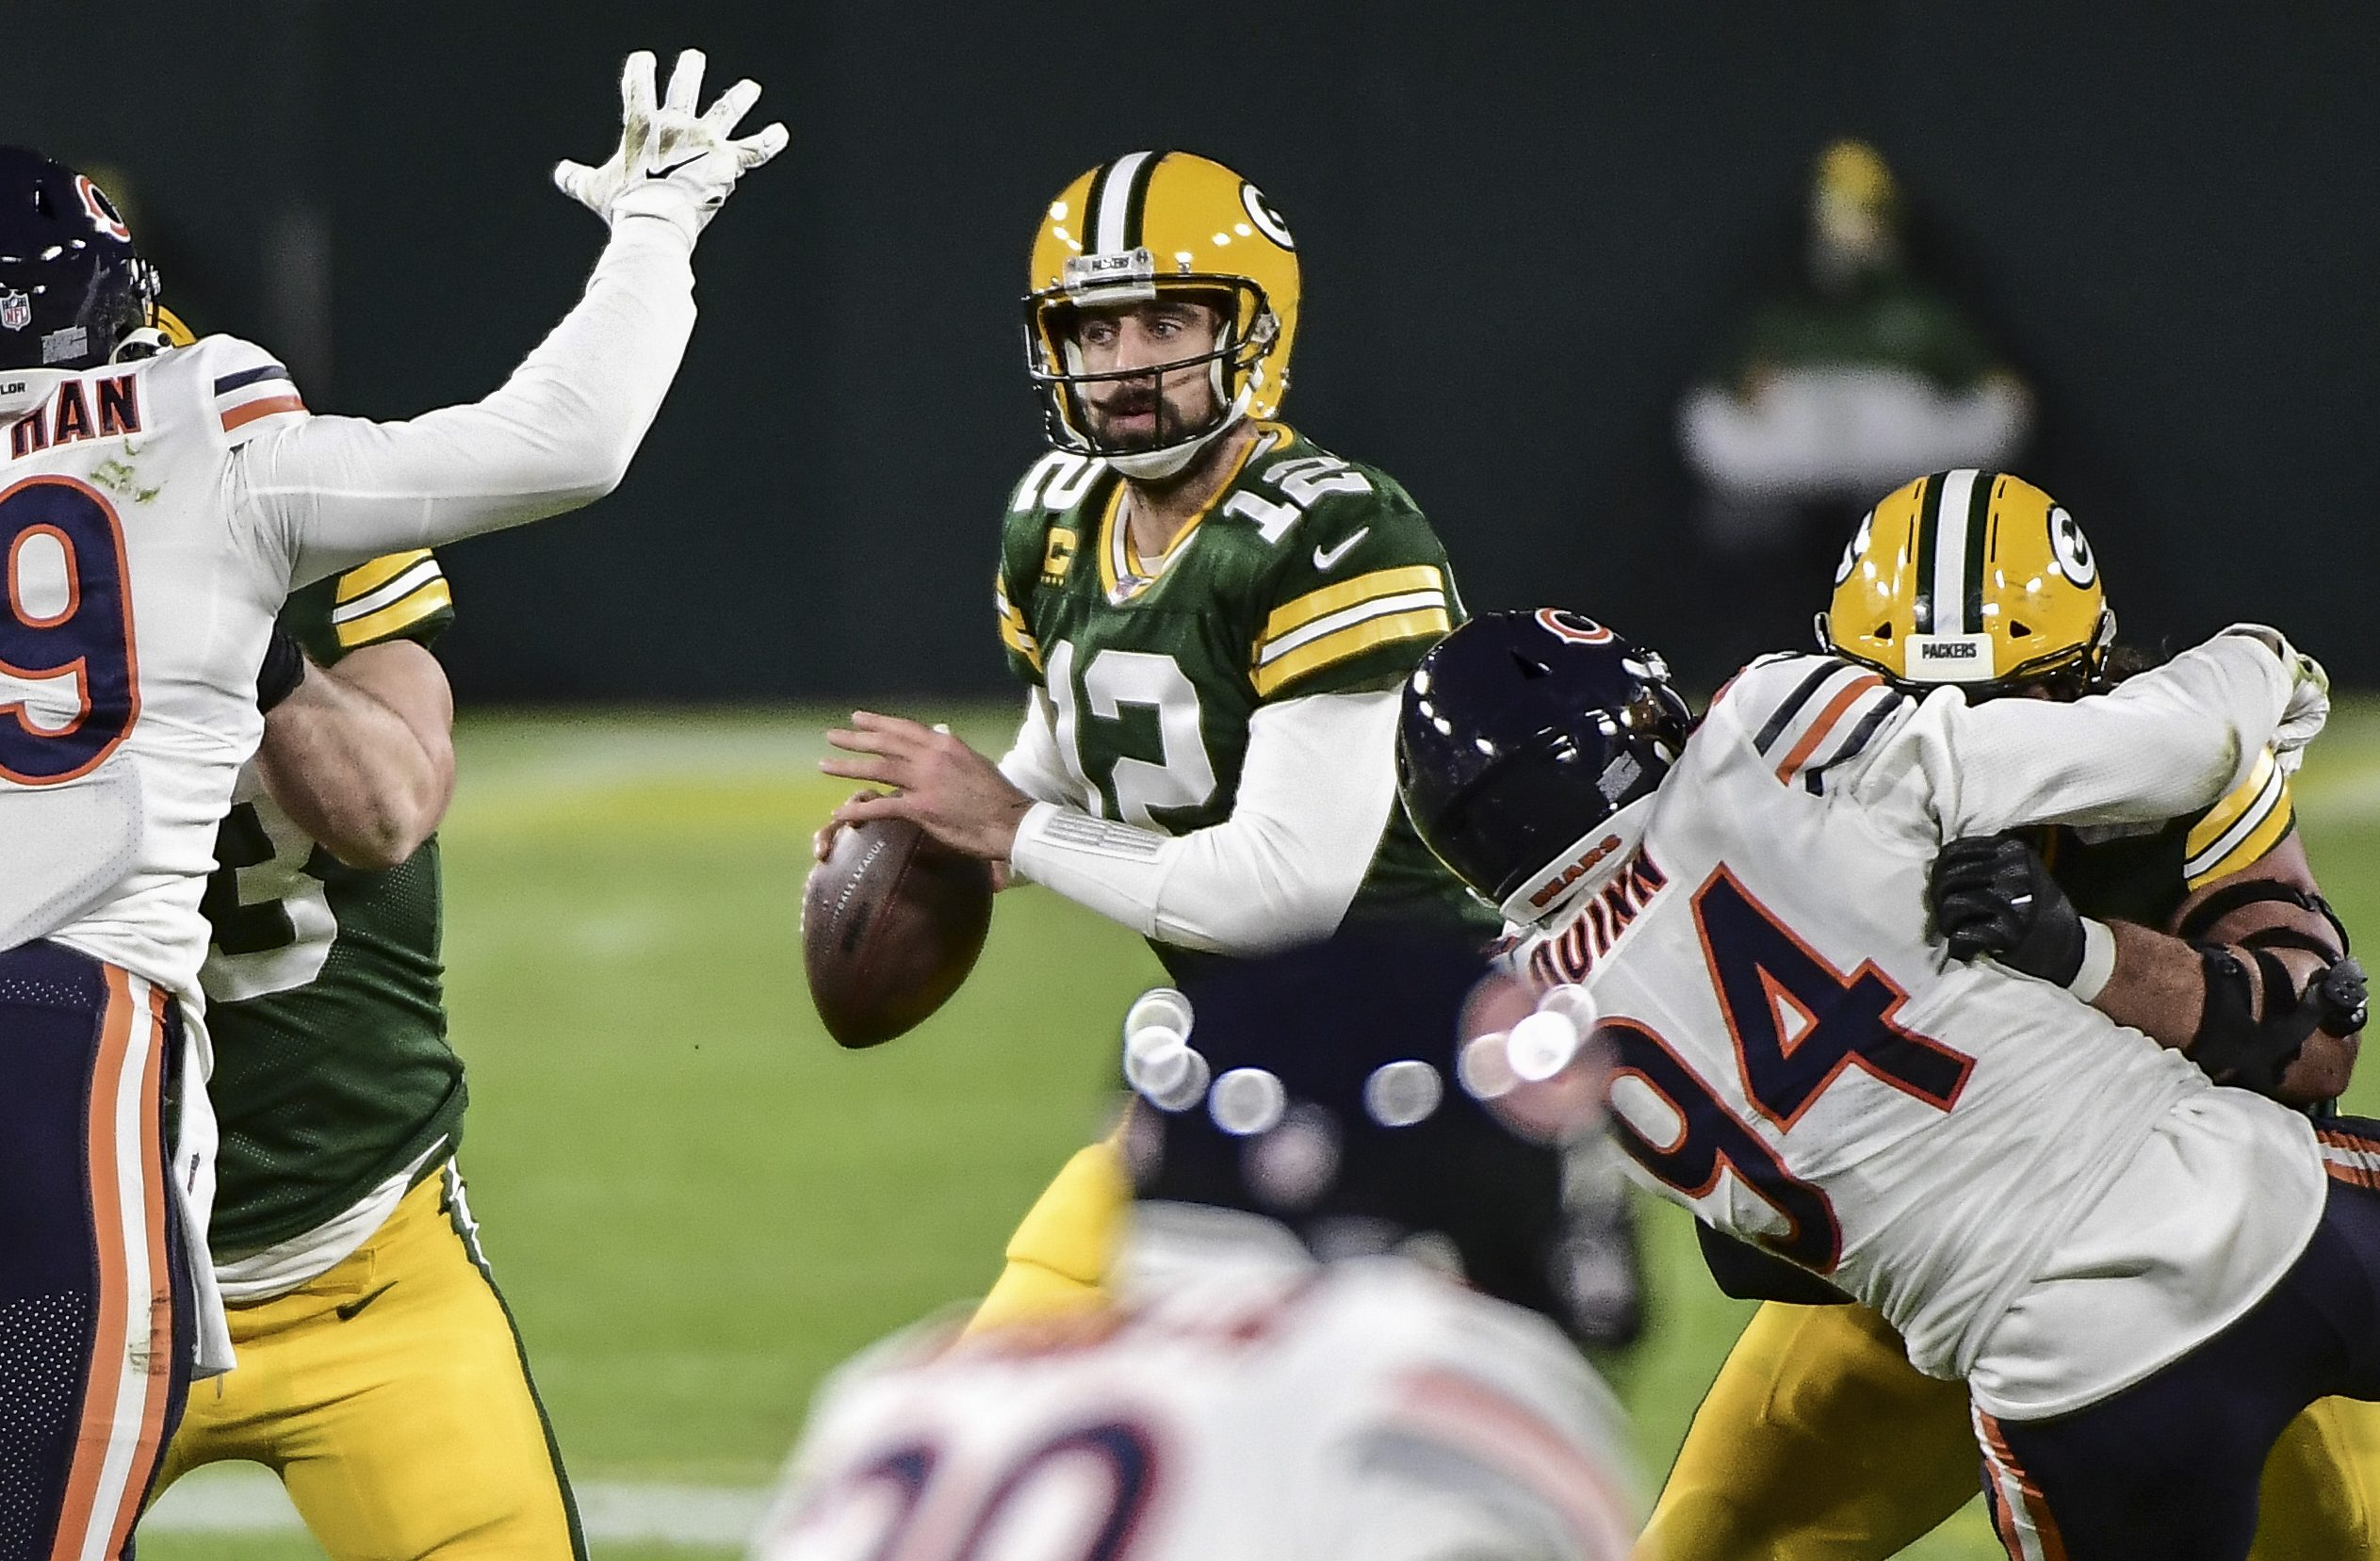 Sunday Night Football: Aaron Rodgers throws four TDs as Packers rout Bears - NBC Sports - NFL